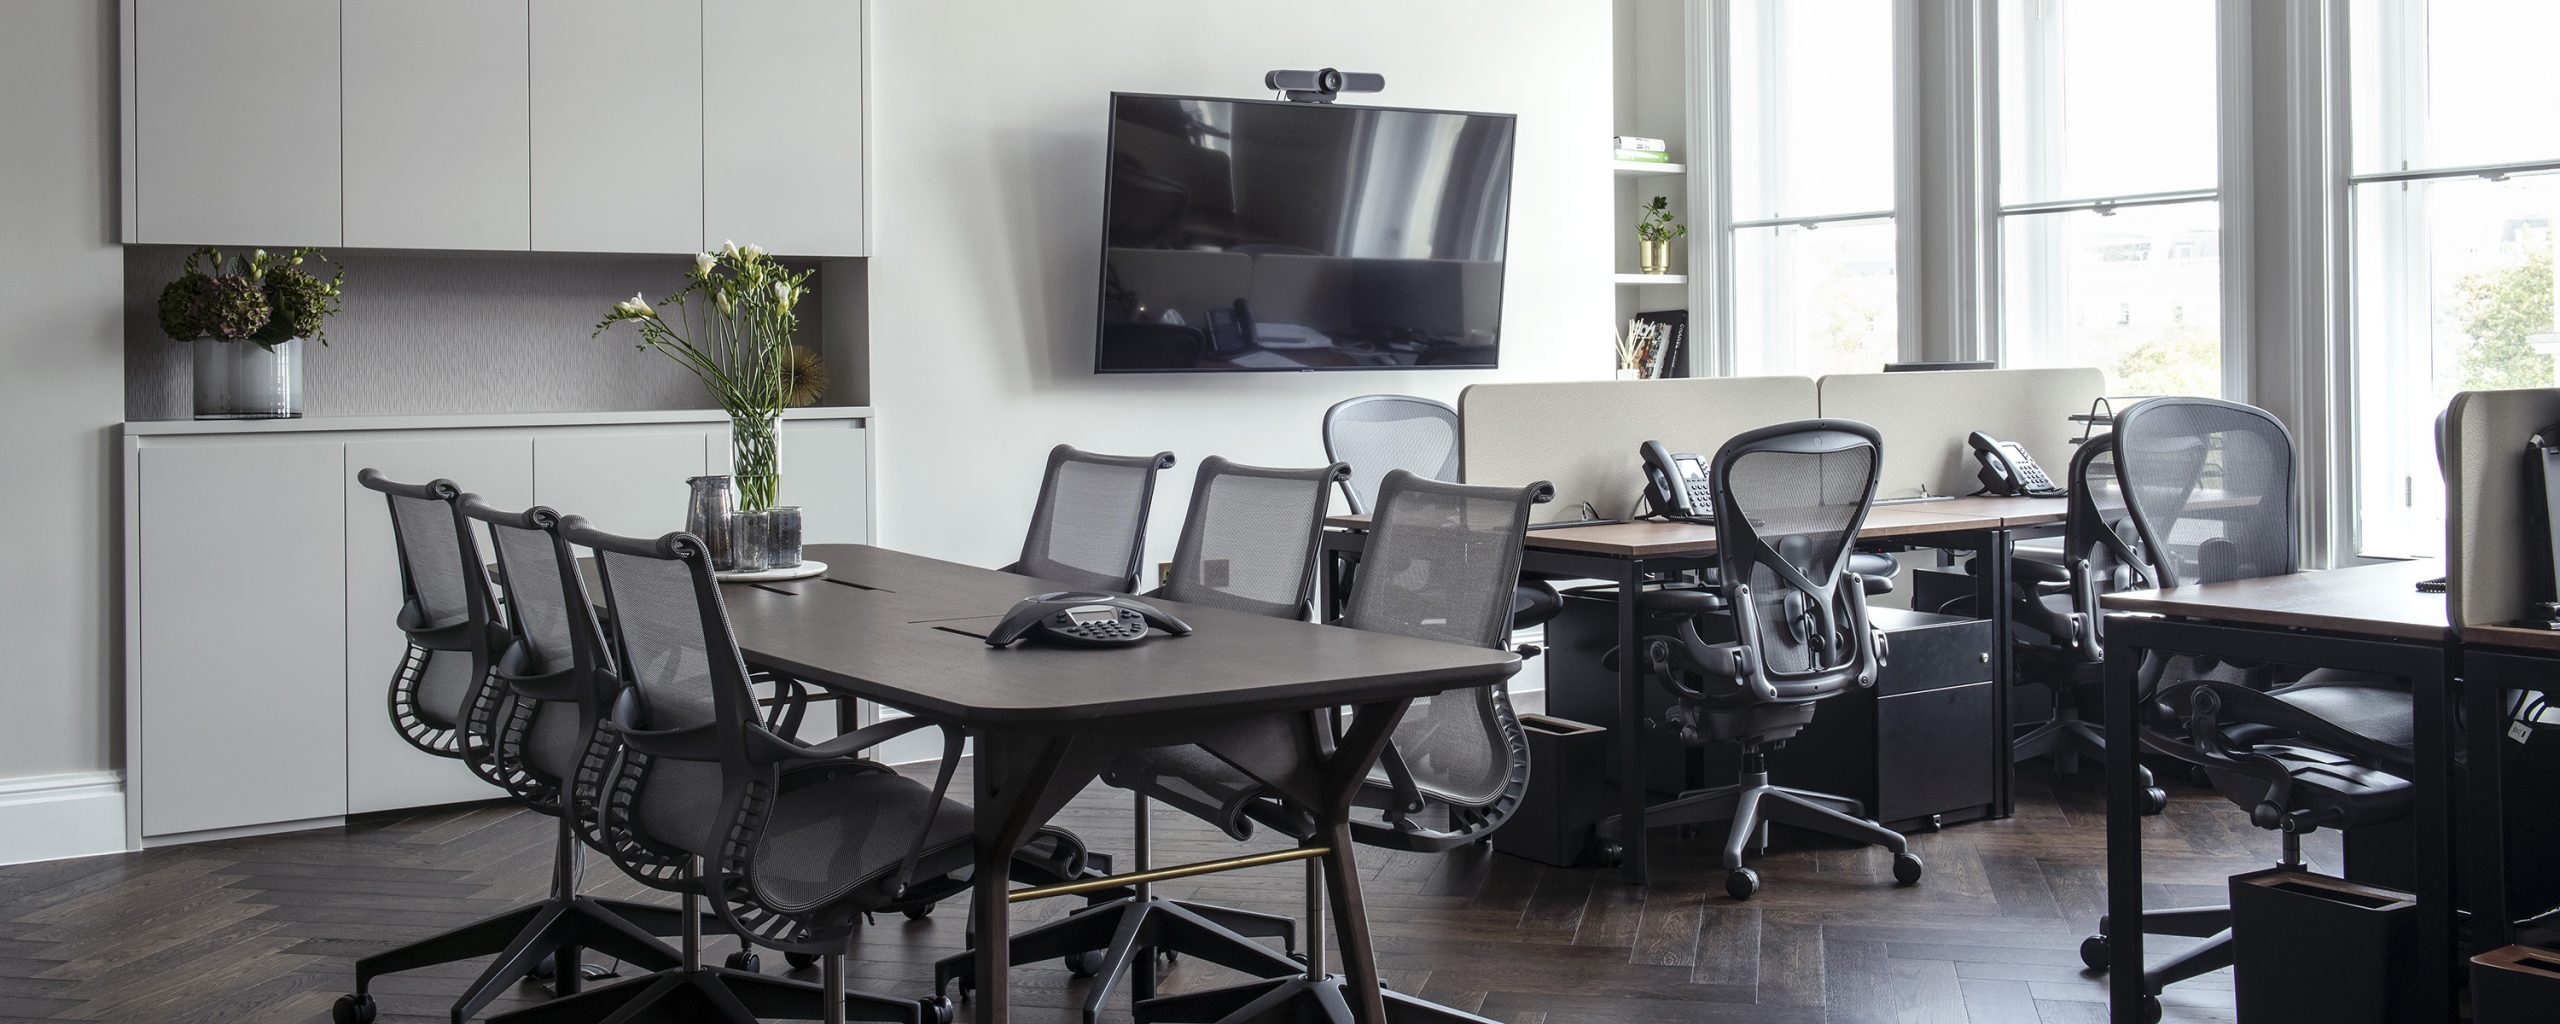 AN INTERIOR DESIGN GUIDE FOR A SUCCESSFUL COMMERCIAL OFFICE WORKSPACE